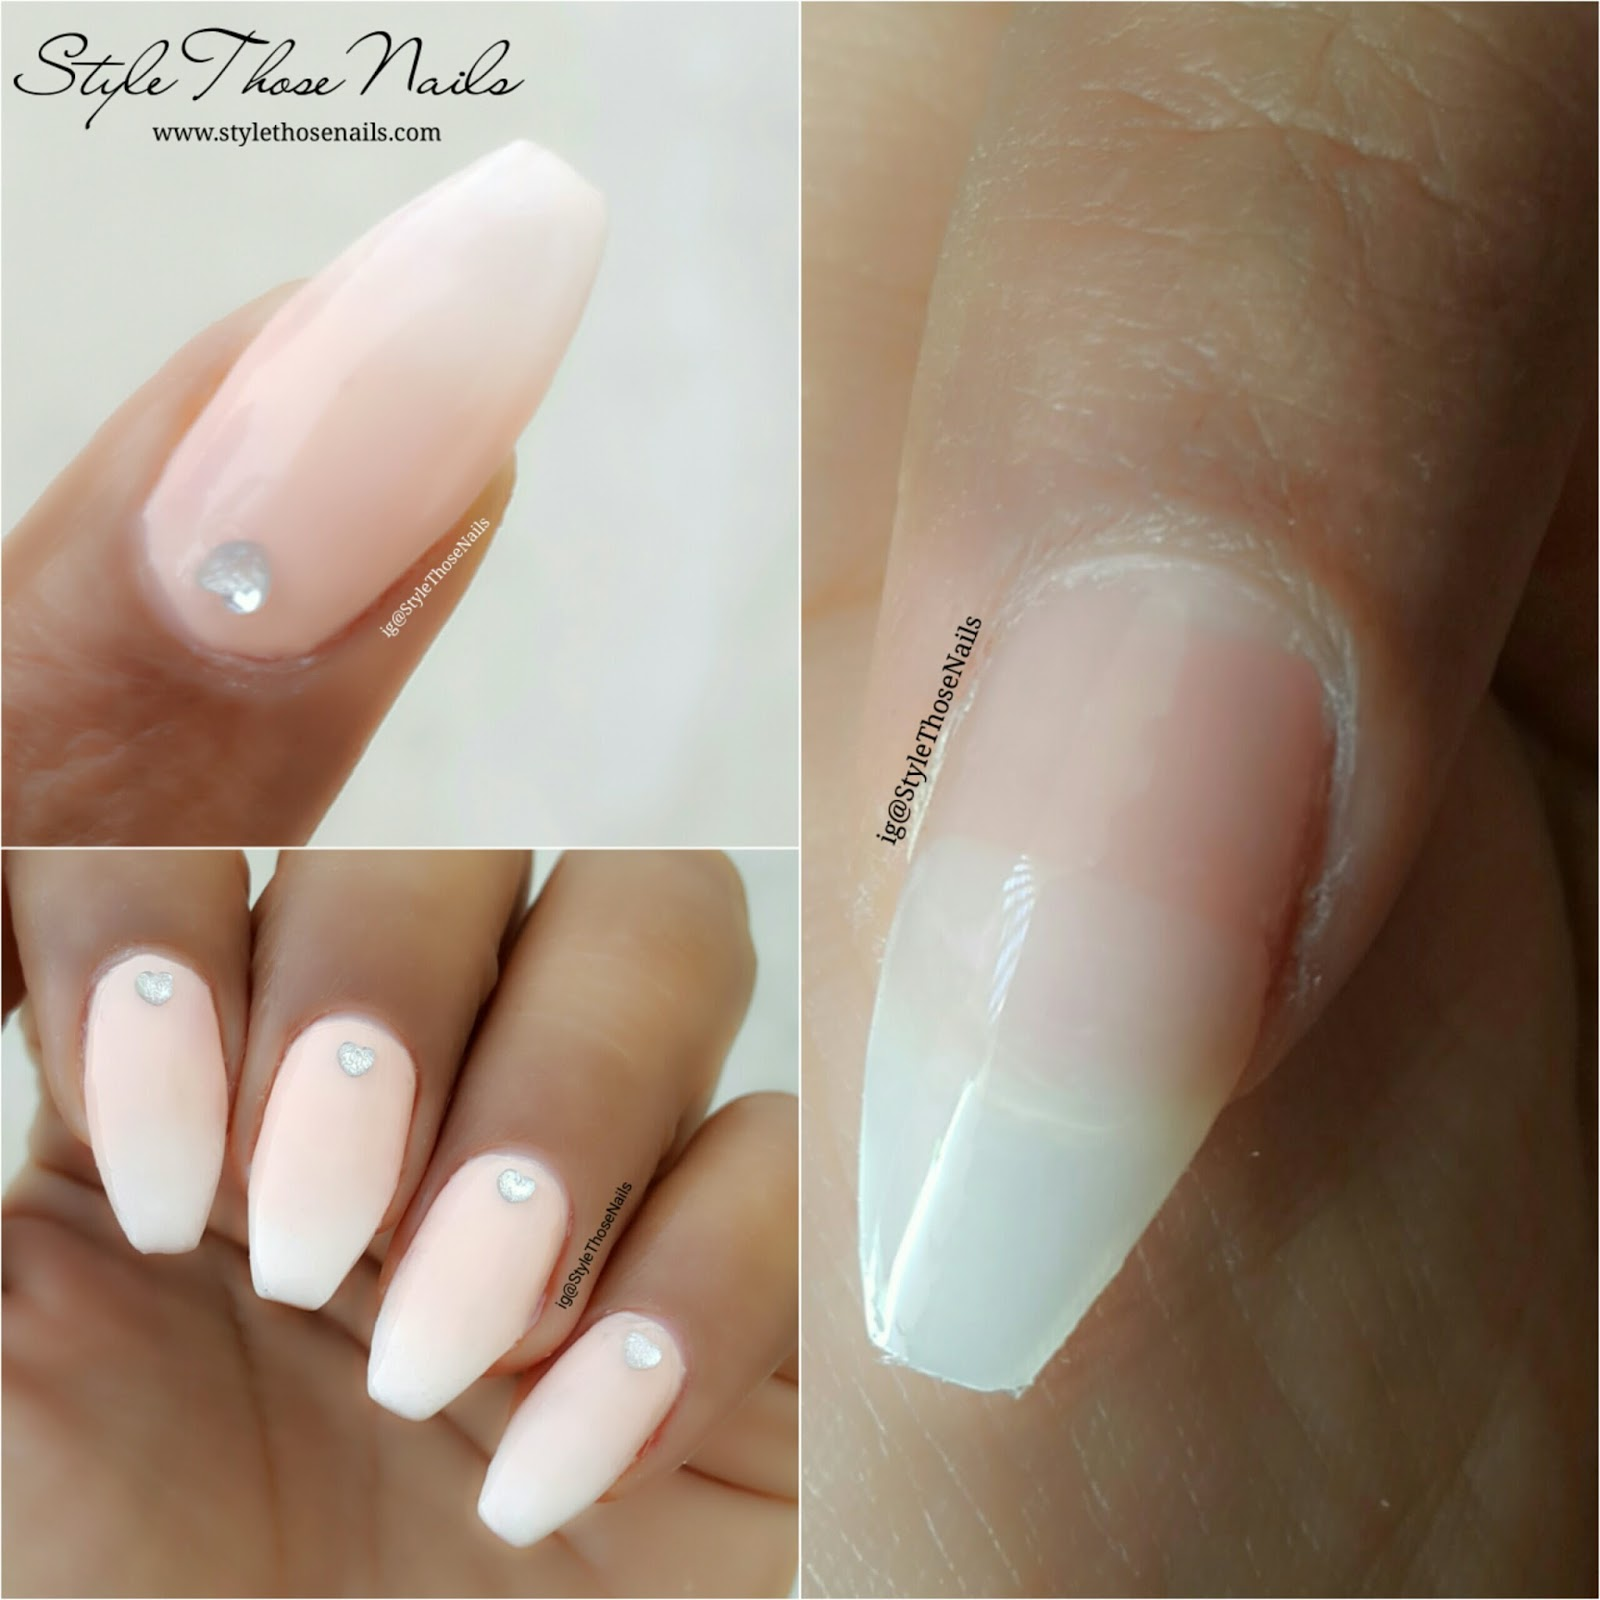 Style Those Nails: Babyboomer / Faded French Gel Nails and Bridal ...